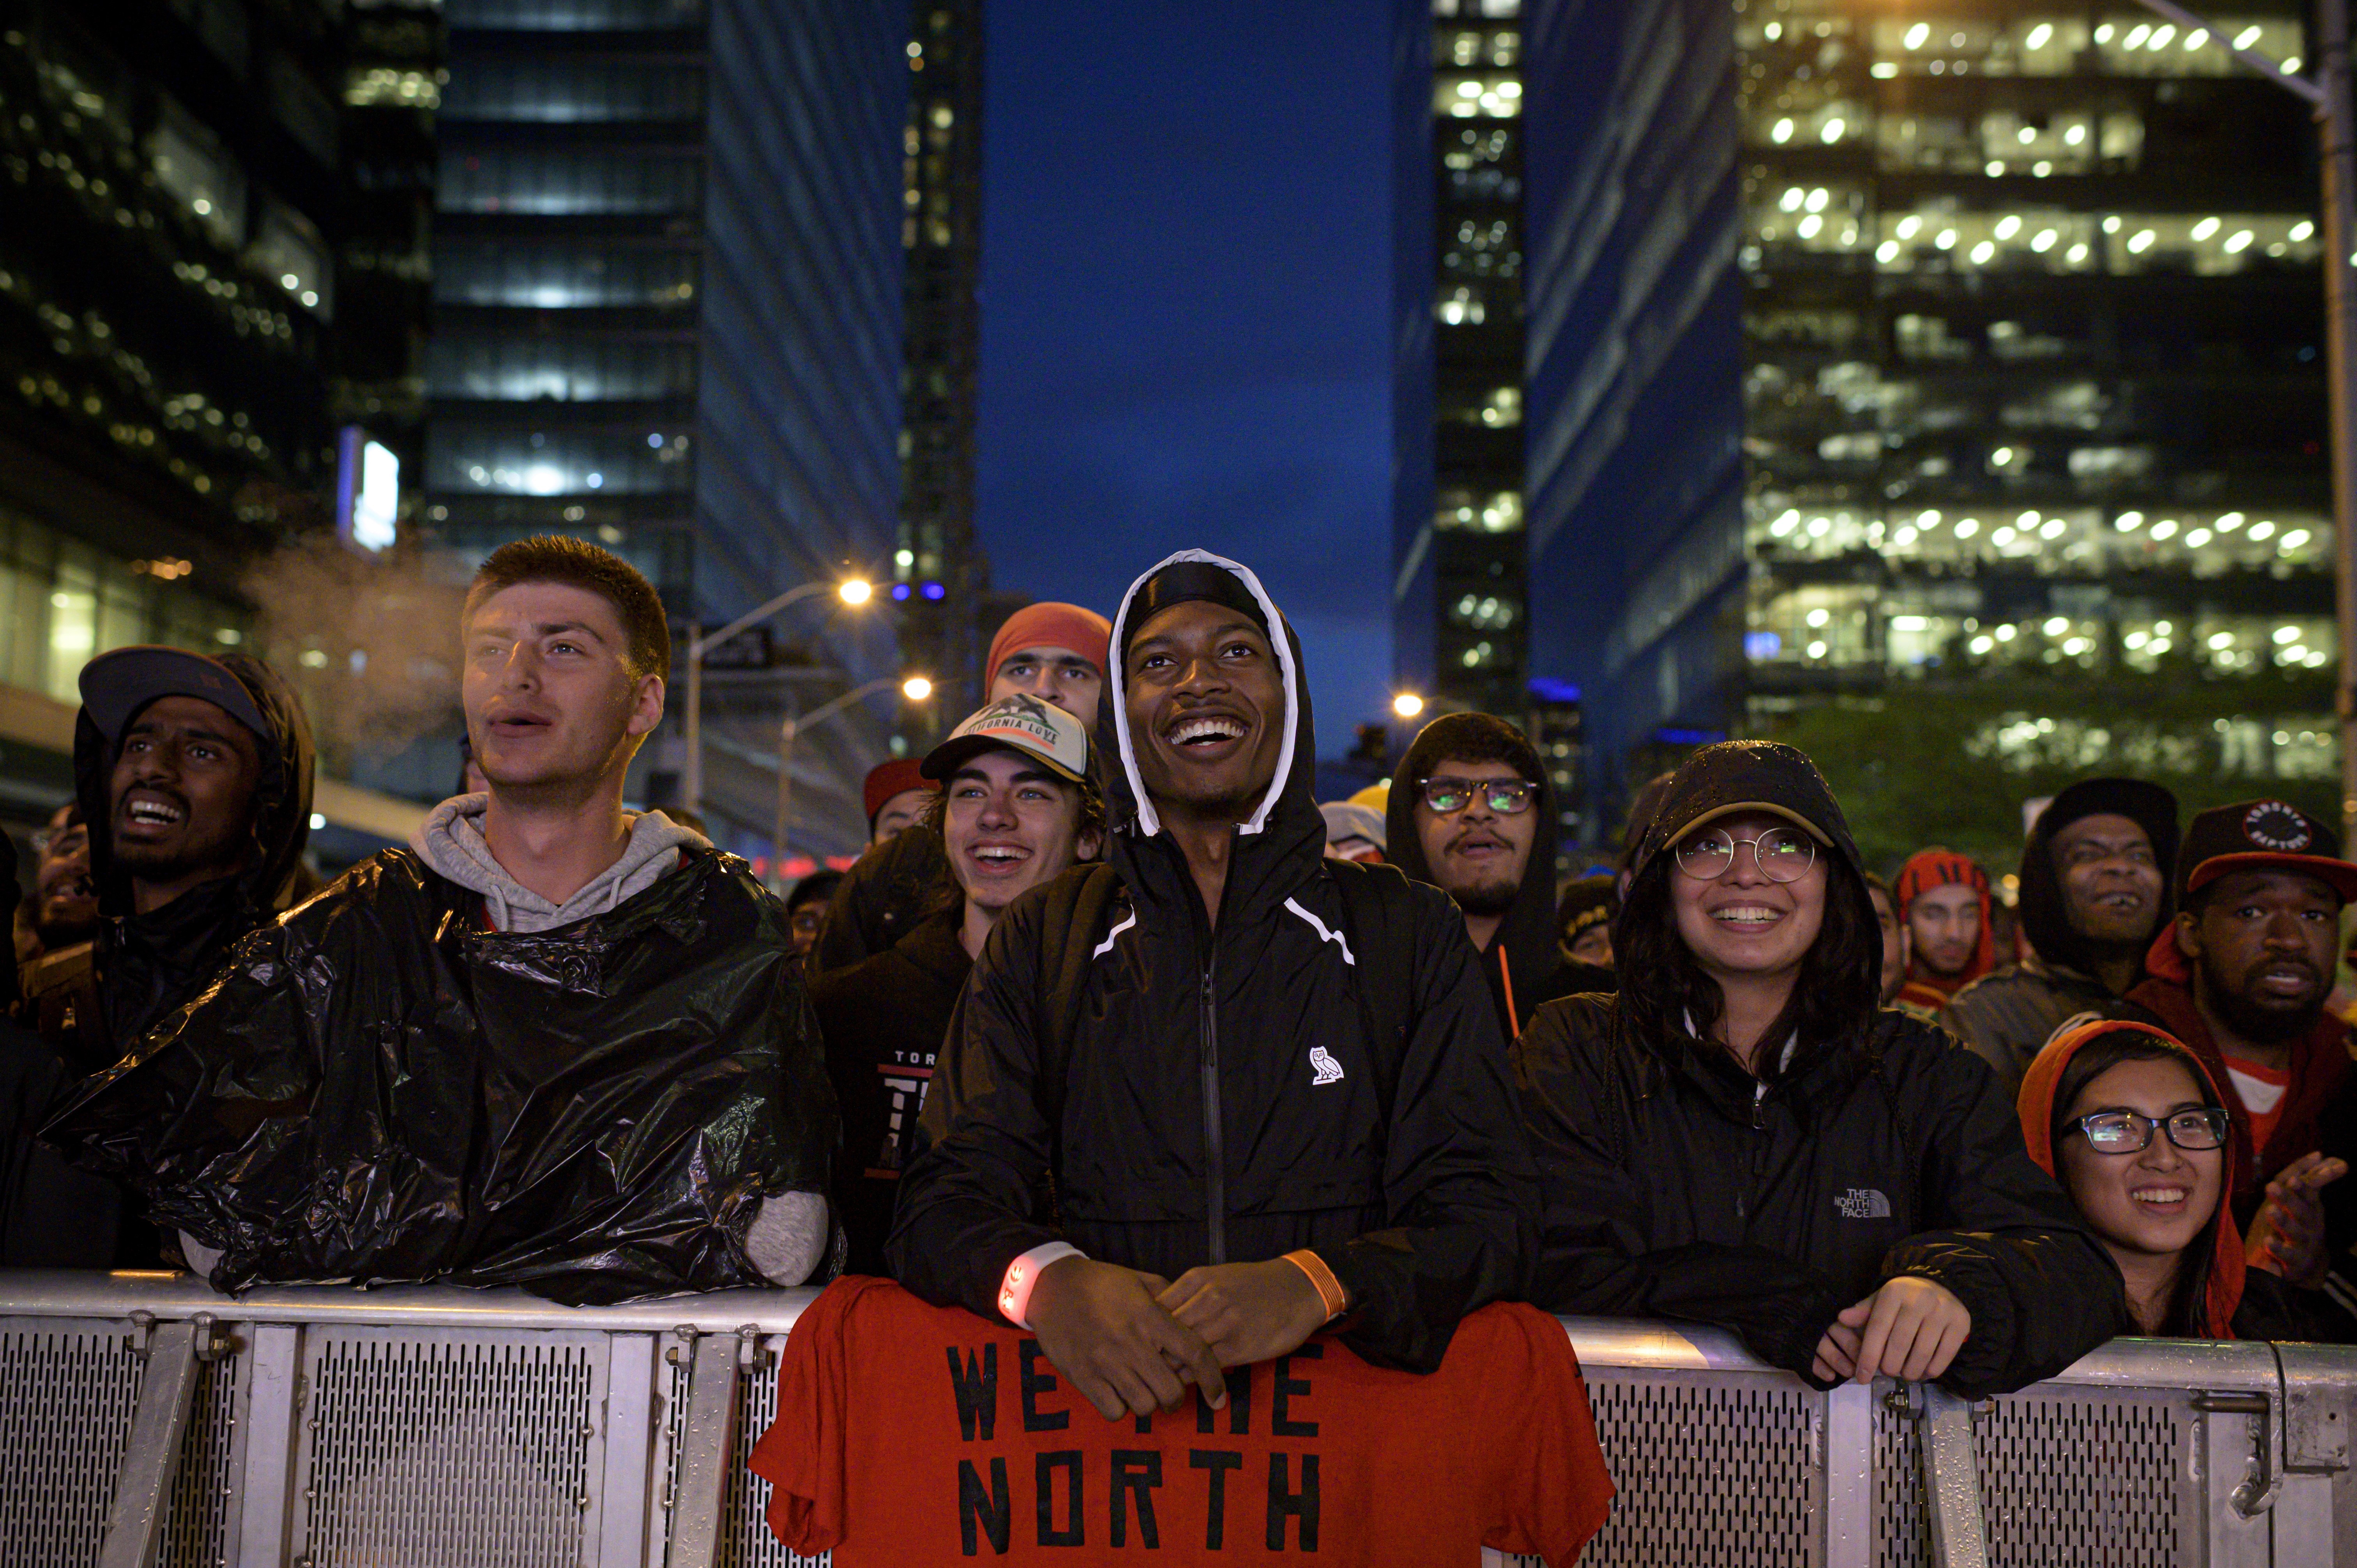 Dino-mite! Raptors win Canada's first National Basketball Association championship